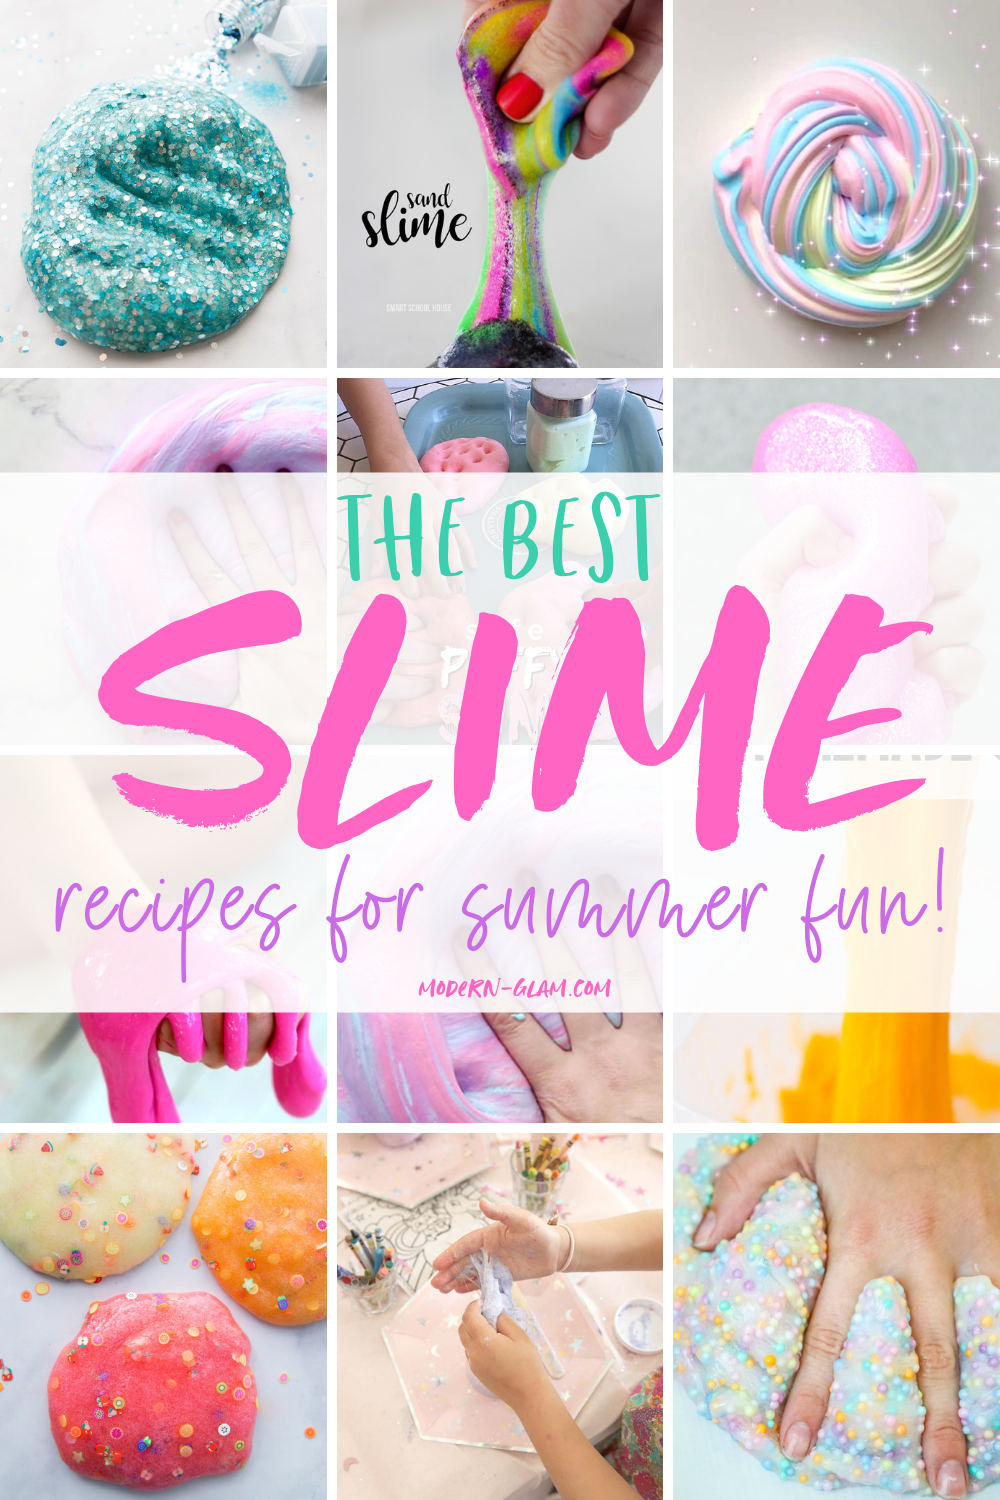 How to make the best slime ever